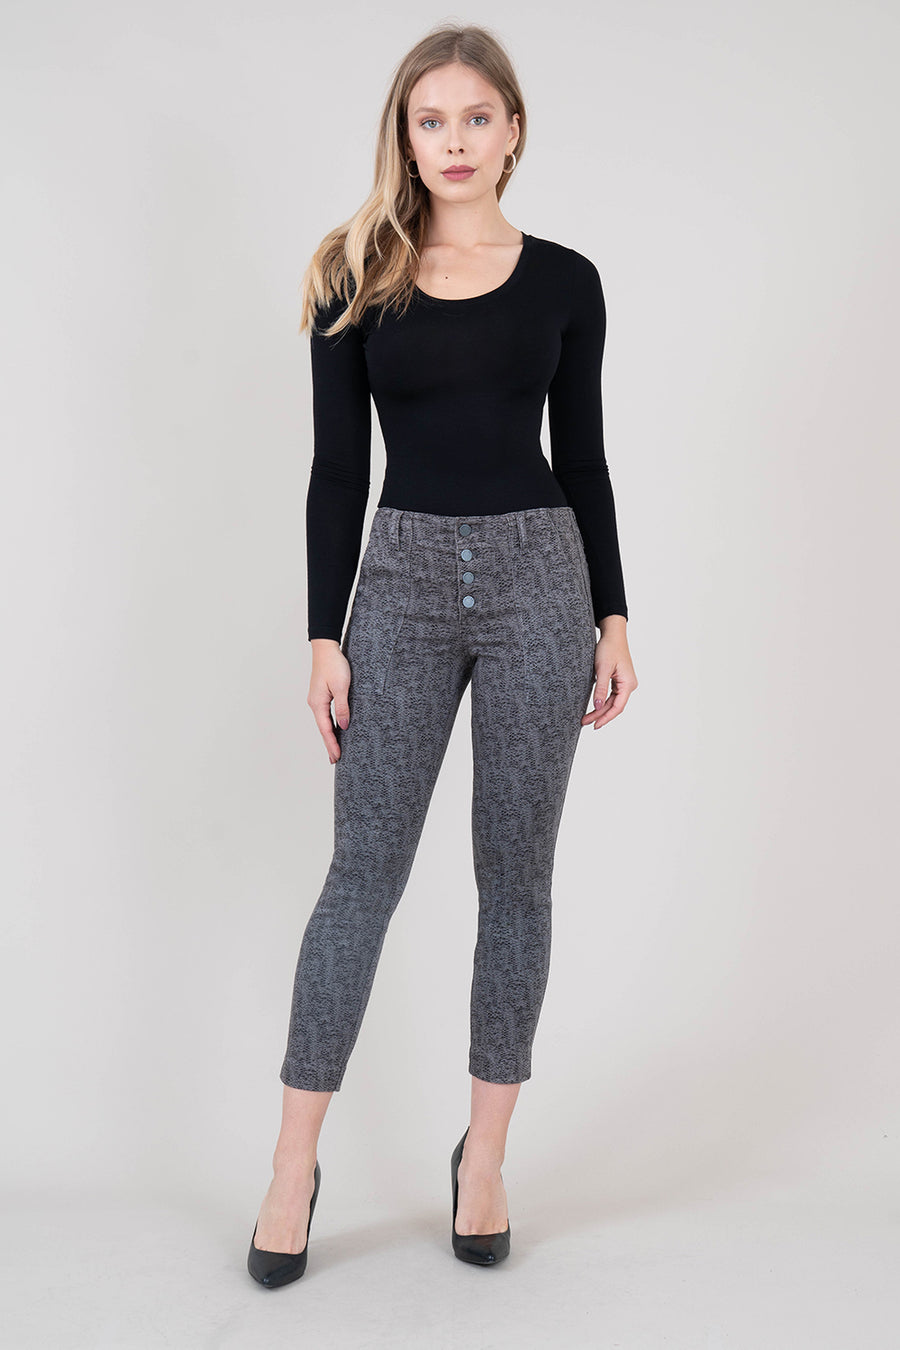 Aiden Exposed Button Pant - level99jeans